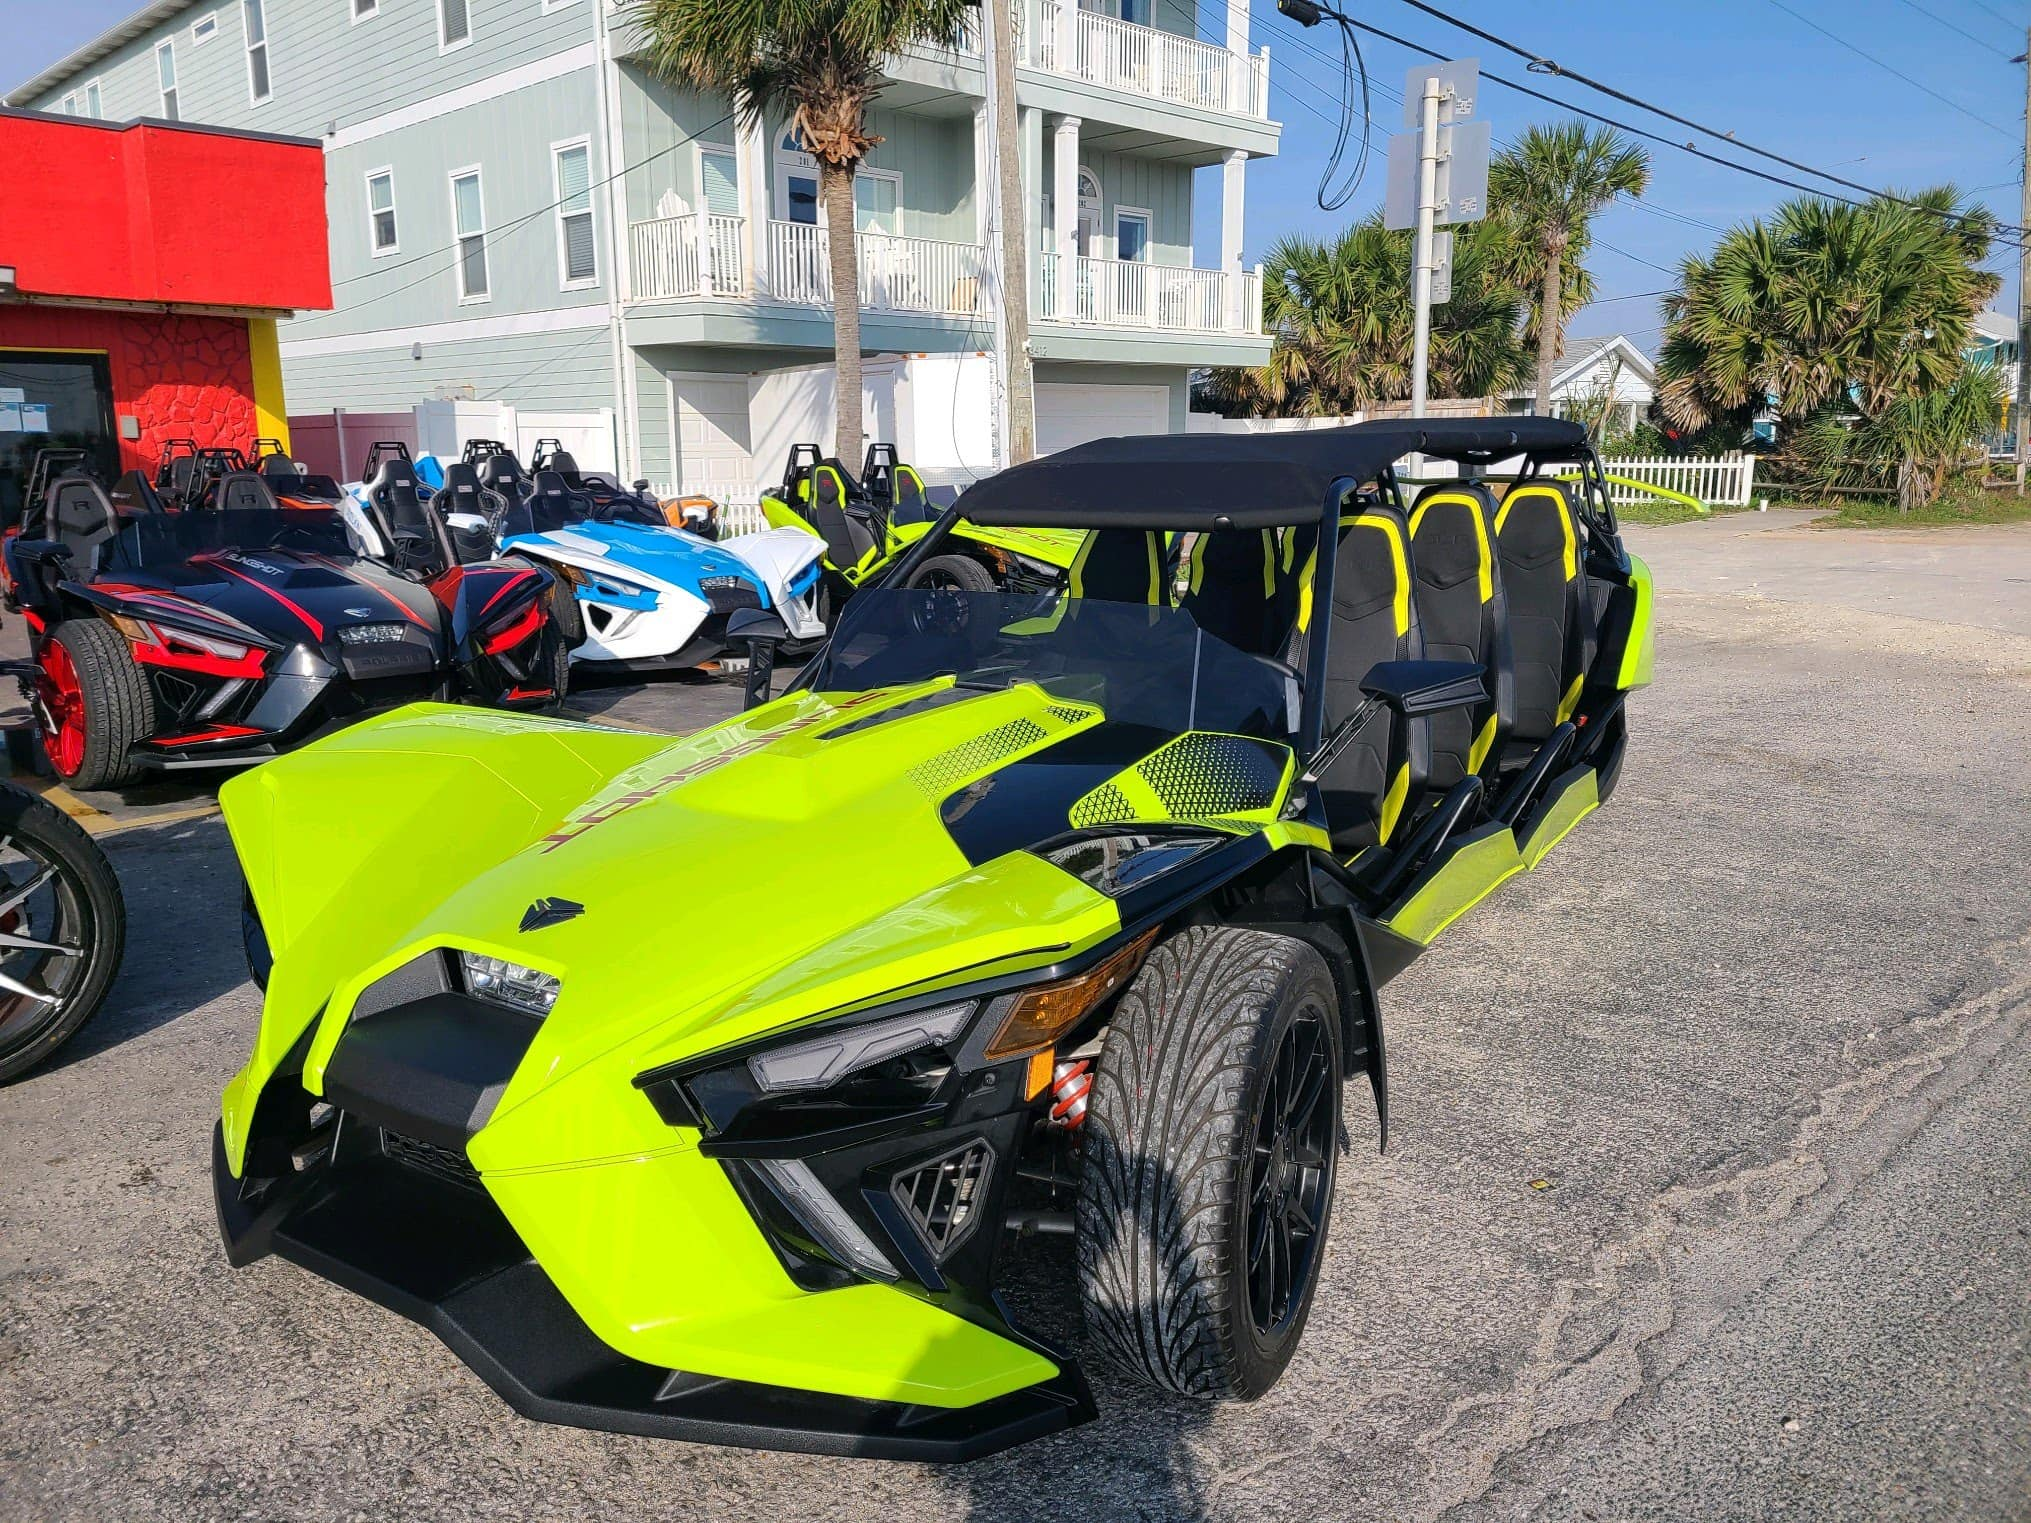 13416 Front Beach Road - California Cycles - Outlaw Rentals - Panama City Beach Vehicle Rentals